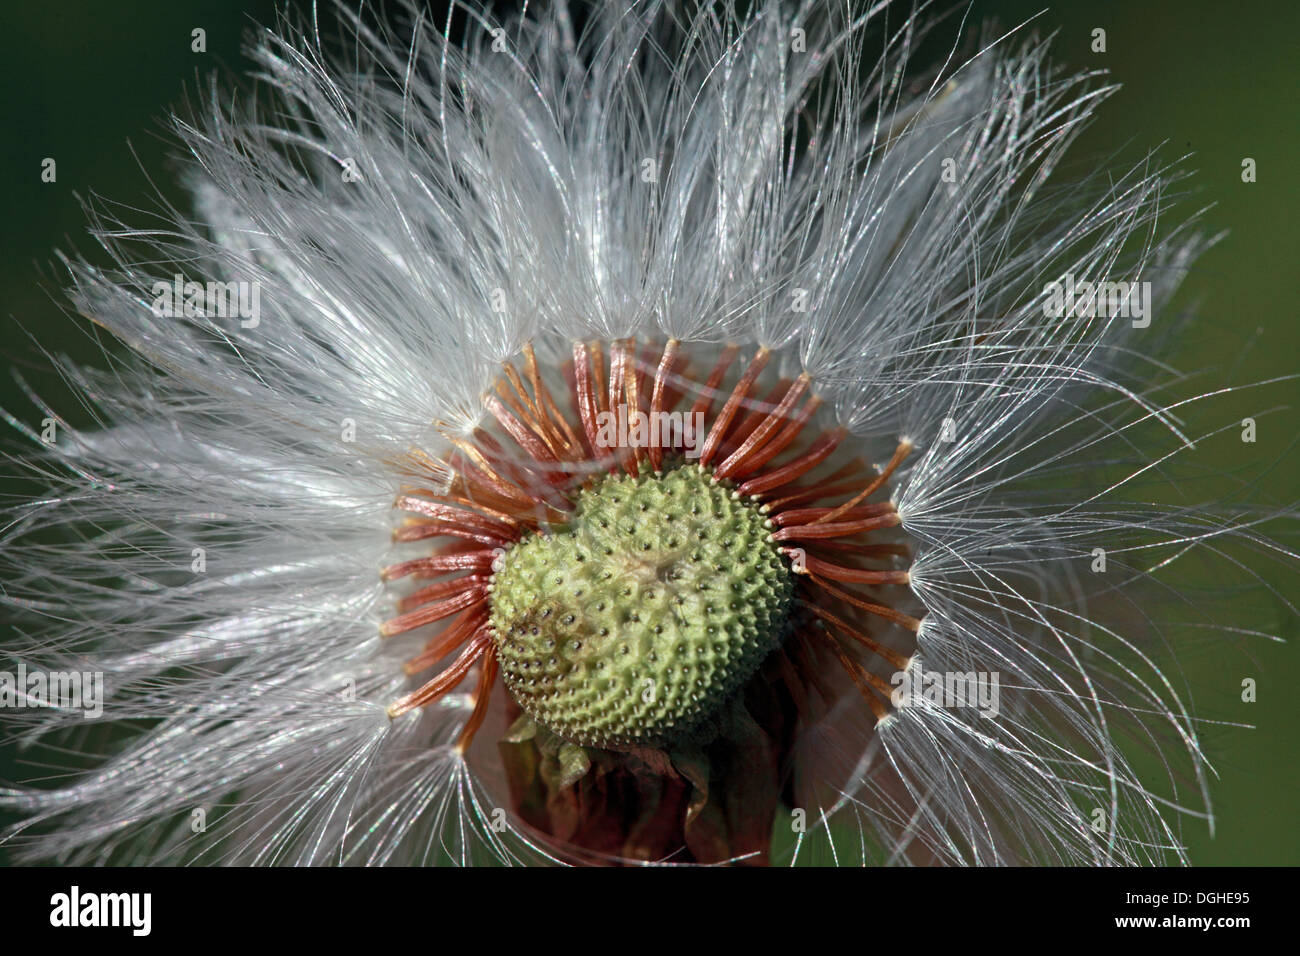 GoTonySmith,@HotpixUK,Tony,Smith,UK,GB,Great,Britain,United,Kingdom,English,British,England,problem,with,problem with,issue with,Buy Pictures of,Buy Images Of,Images of,Stock Images,Tony Smith,United Kingdom,Great Britain,British Isles,flower,of,Taraxacum,flowers,dandelions,wildflowers,wild,wildflower,seed,seeds,ruderal,ruderals,flowering